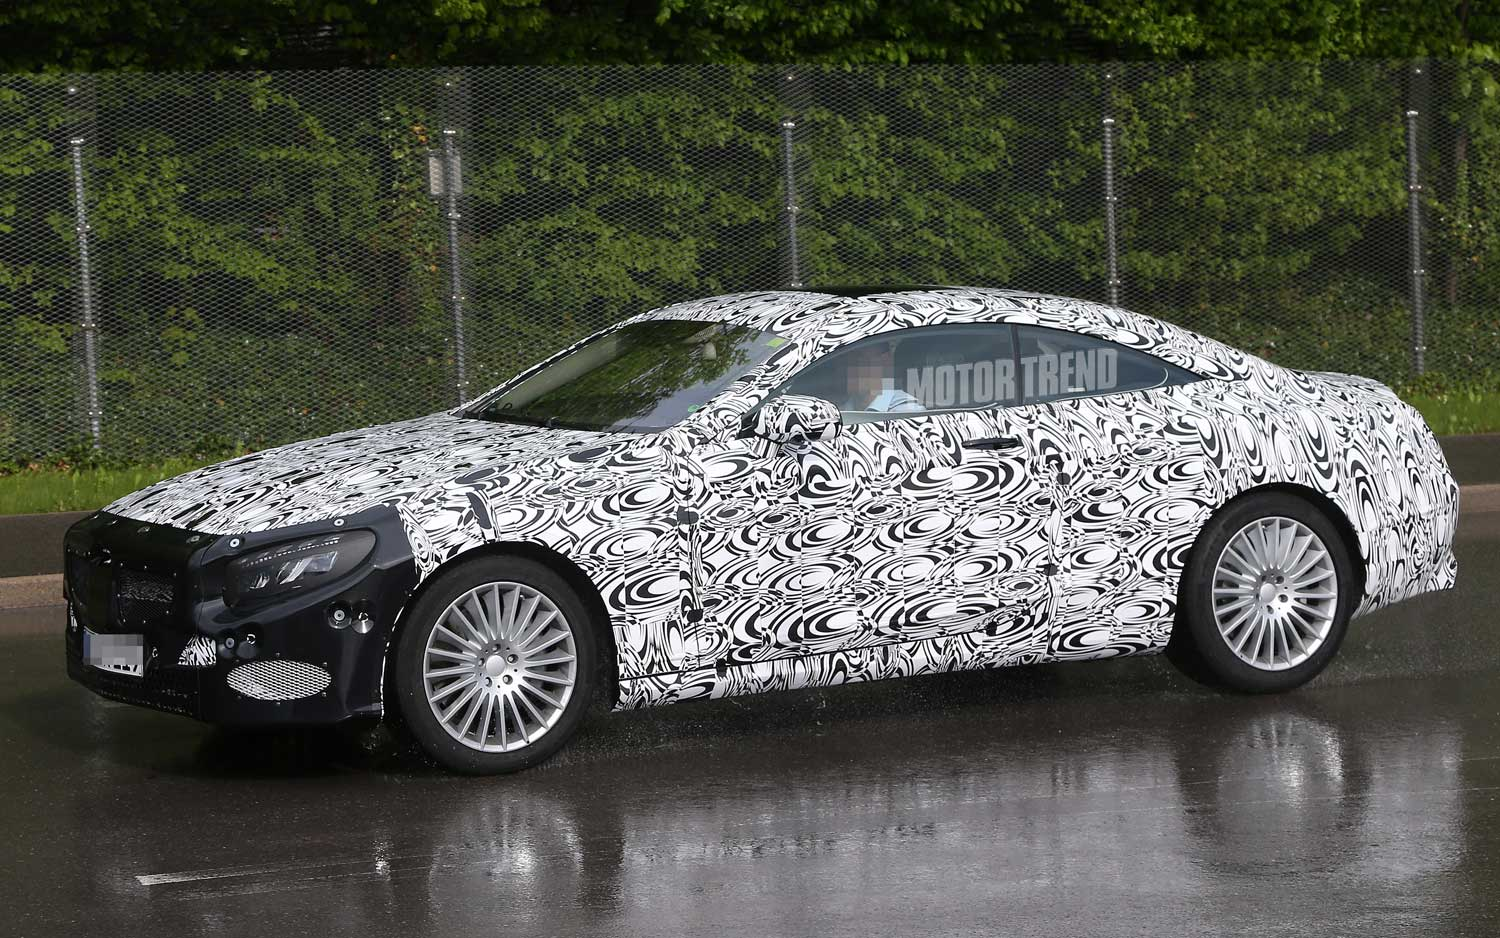 Mercedes-Benz S-Class Coupe Spied Testing on Wet Roads